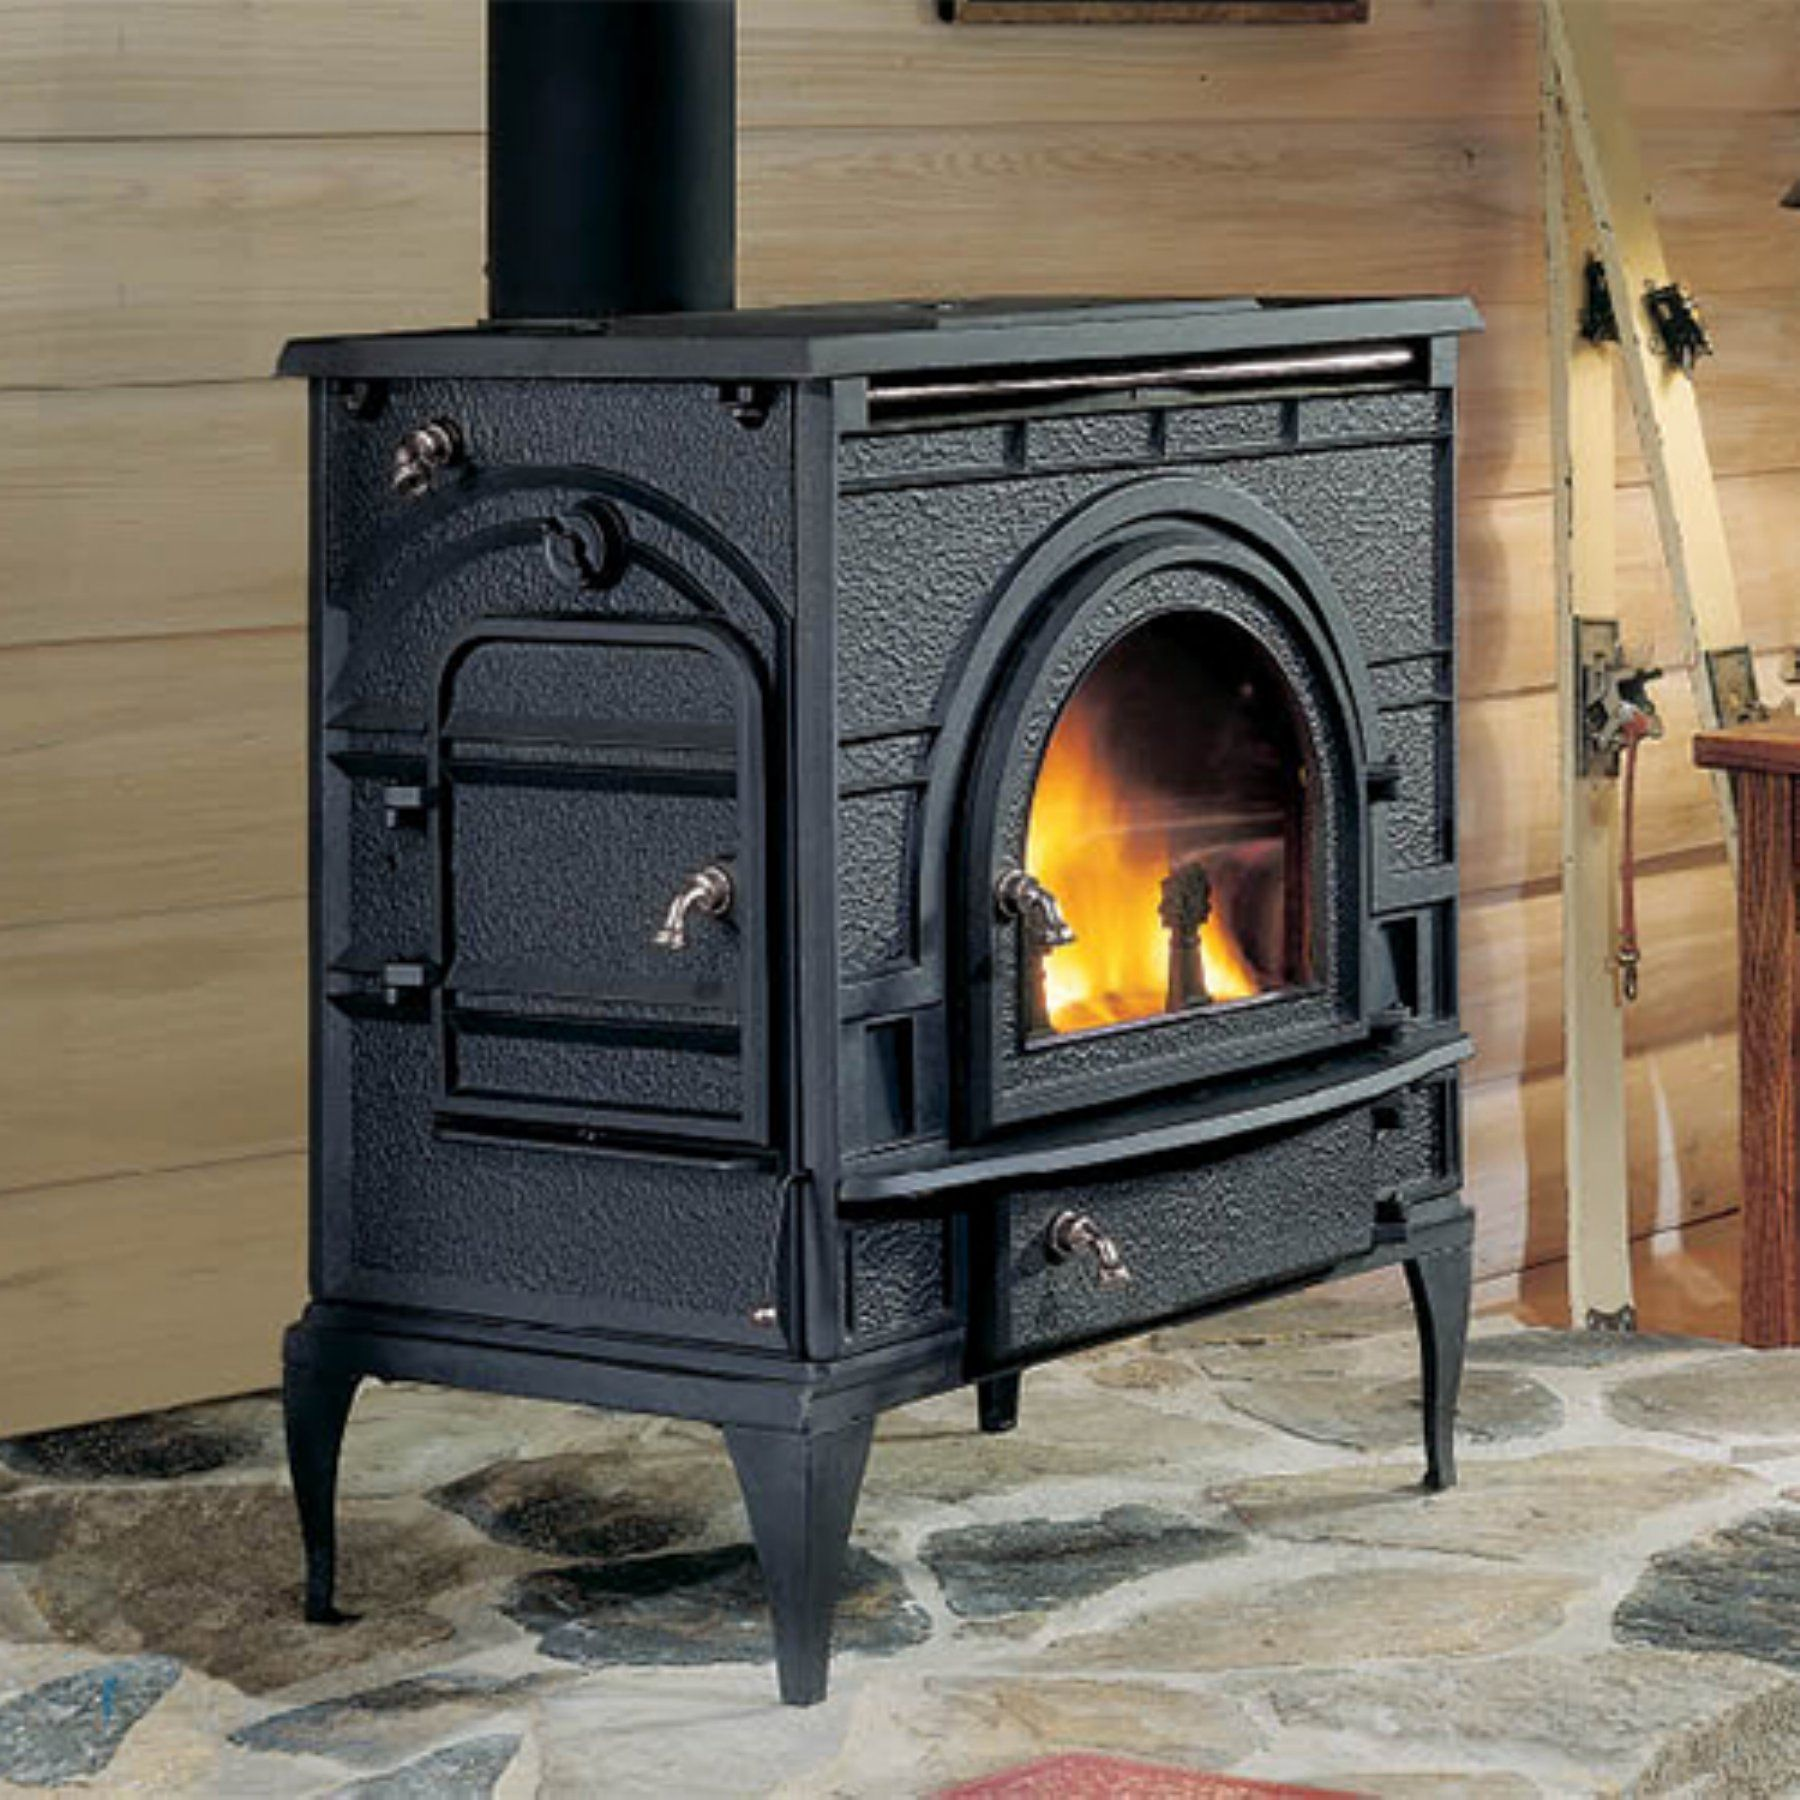 Hearthstone Fireplace Insert Unique Majestic Dutchwest Catalytic Wood Stove Ned220